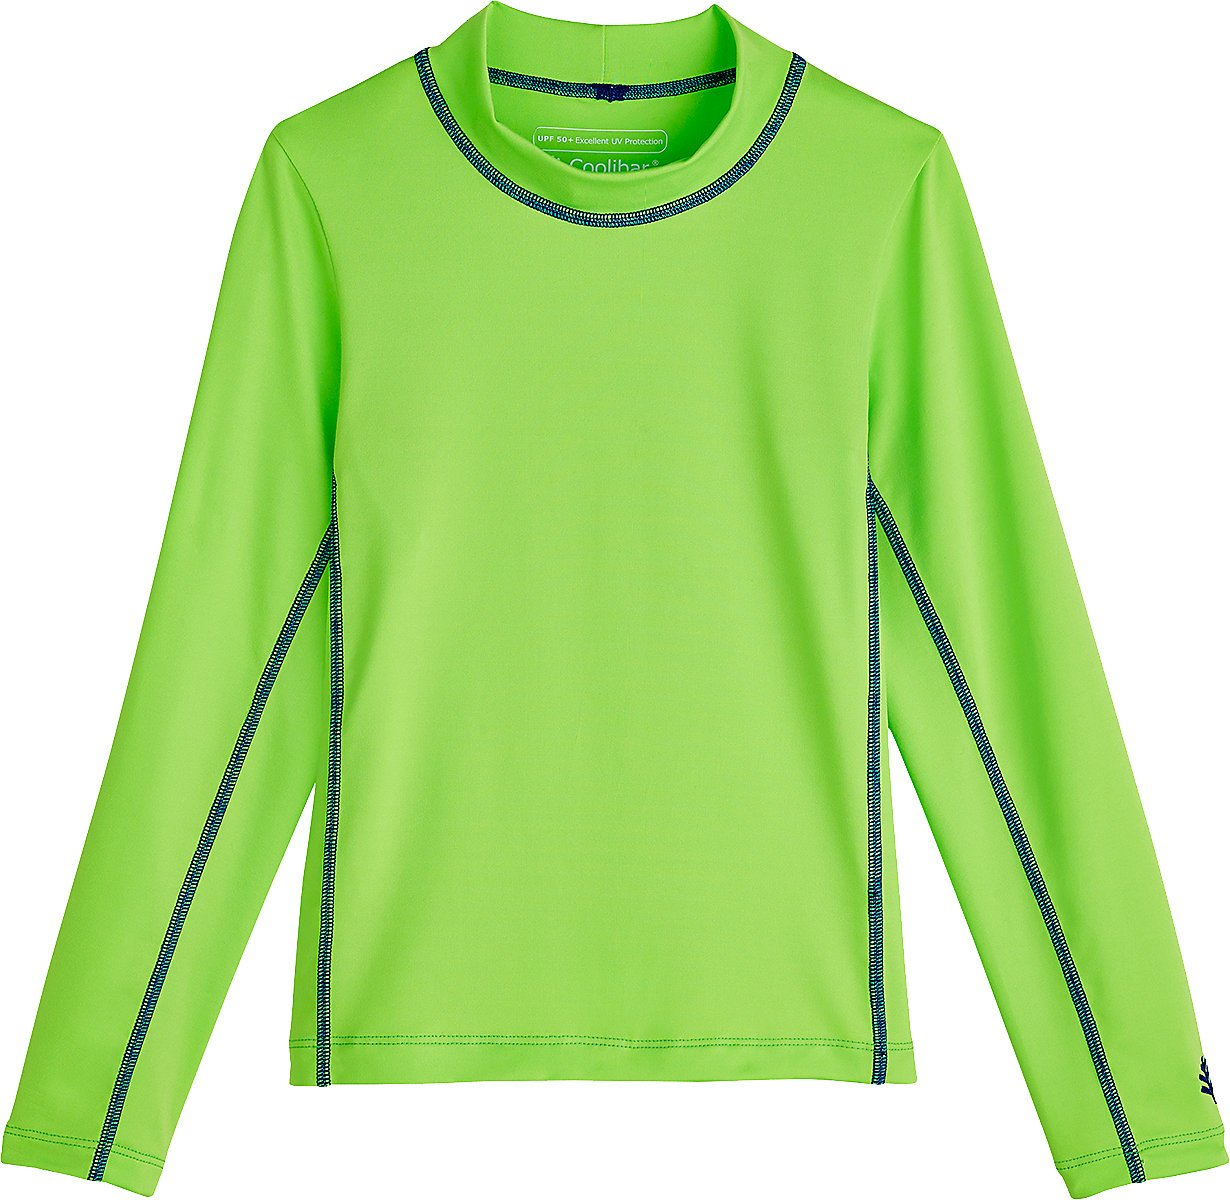 Coolibar UPF 50+ Kids' Long Sleeve Surf Shirt - Sun Protective (Large- Lime Green) by Coolibar